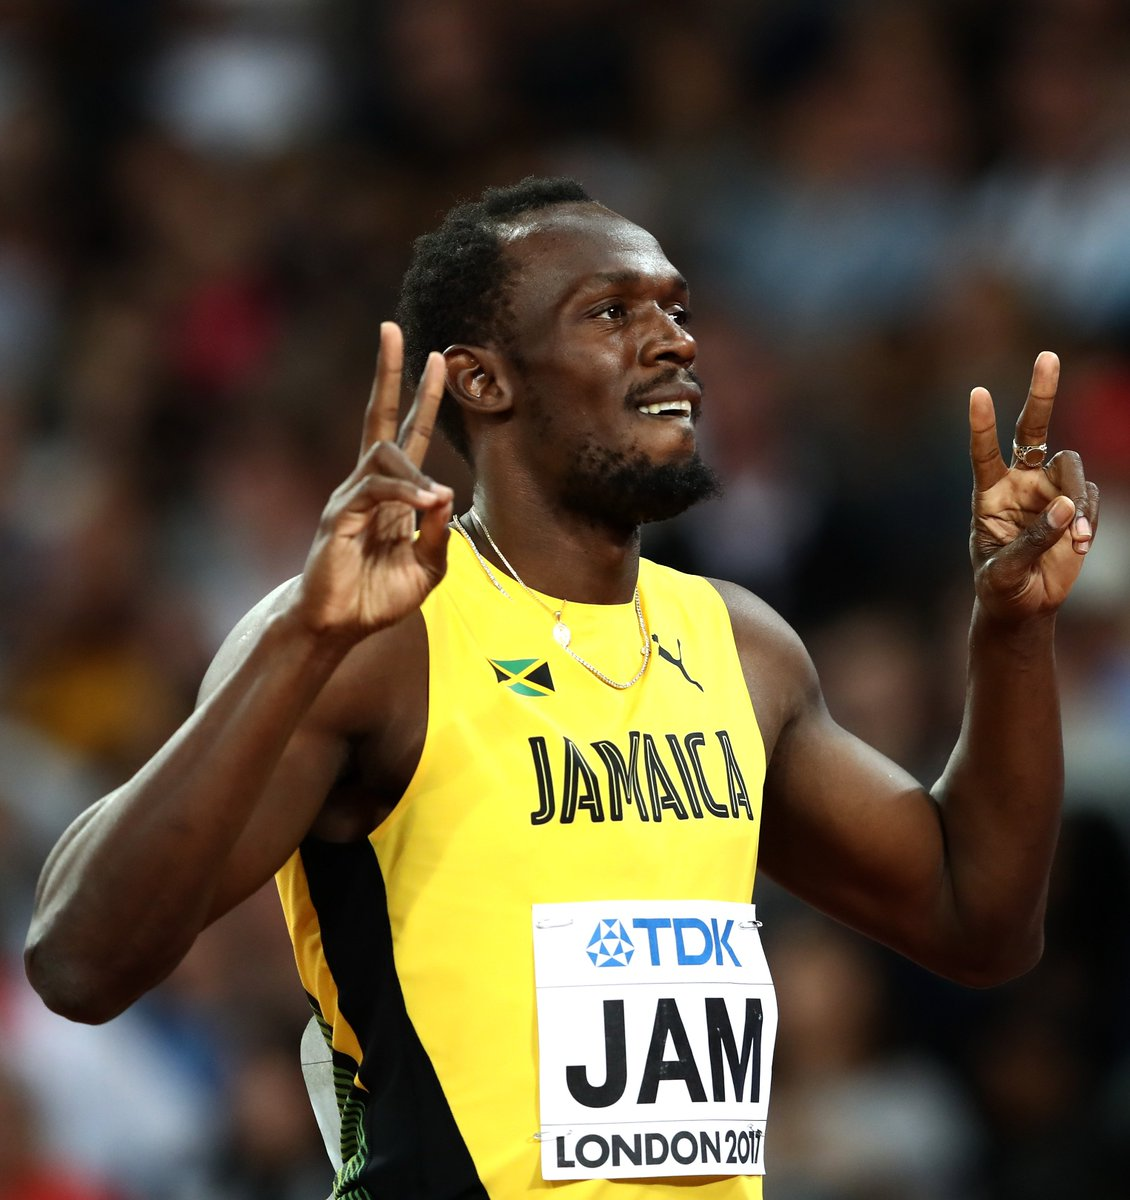 Usain Bolt Says He Has 'Infinite Love' for His Fans After Injury in Final Race